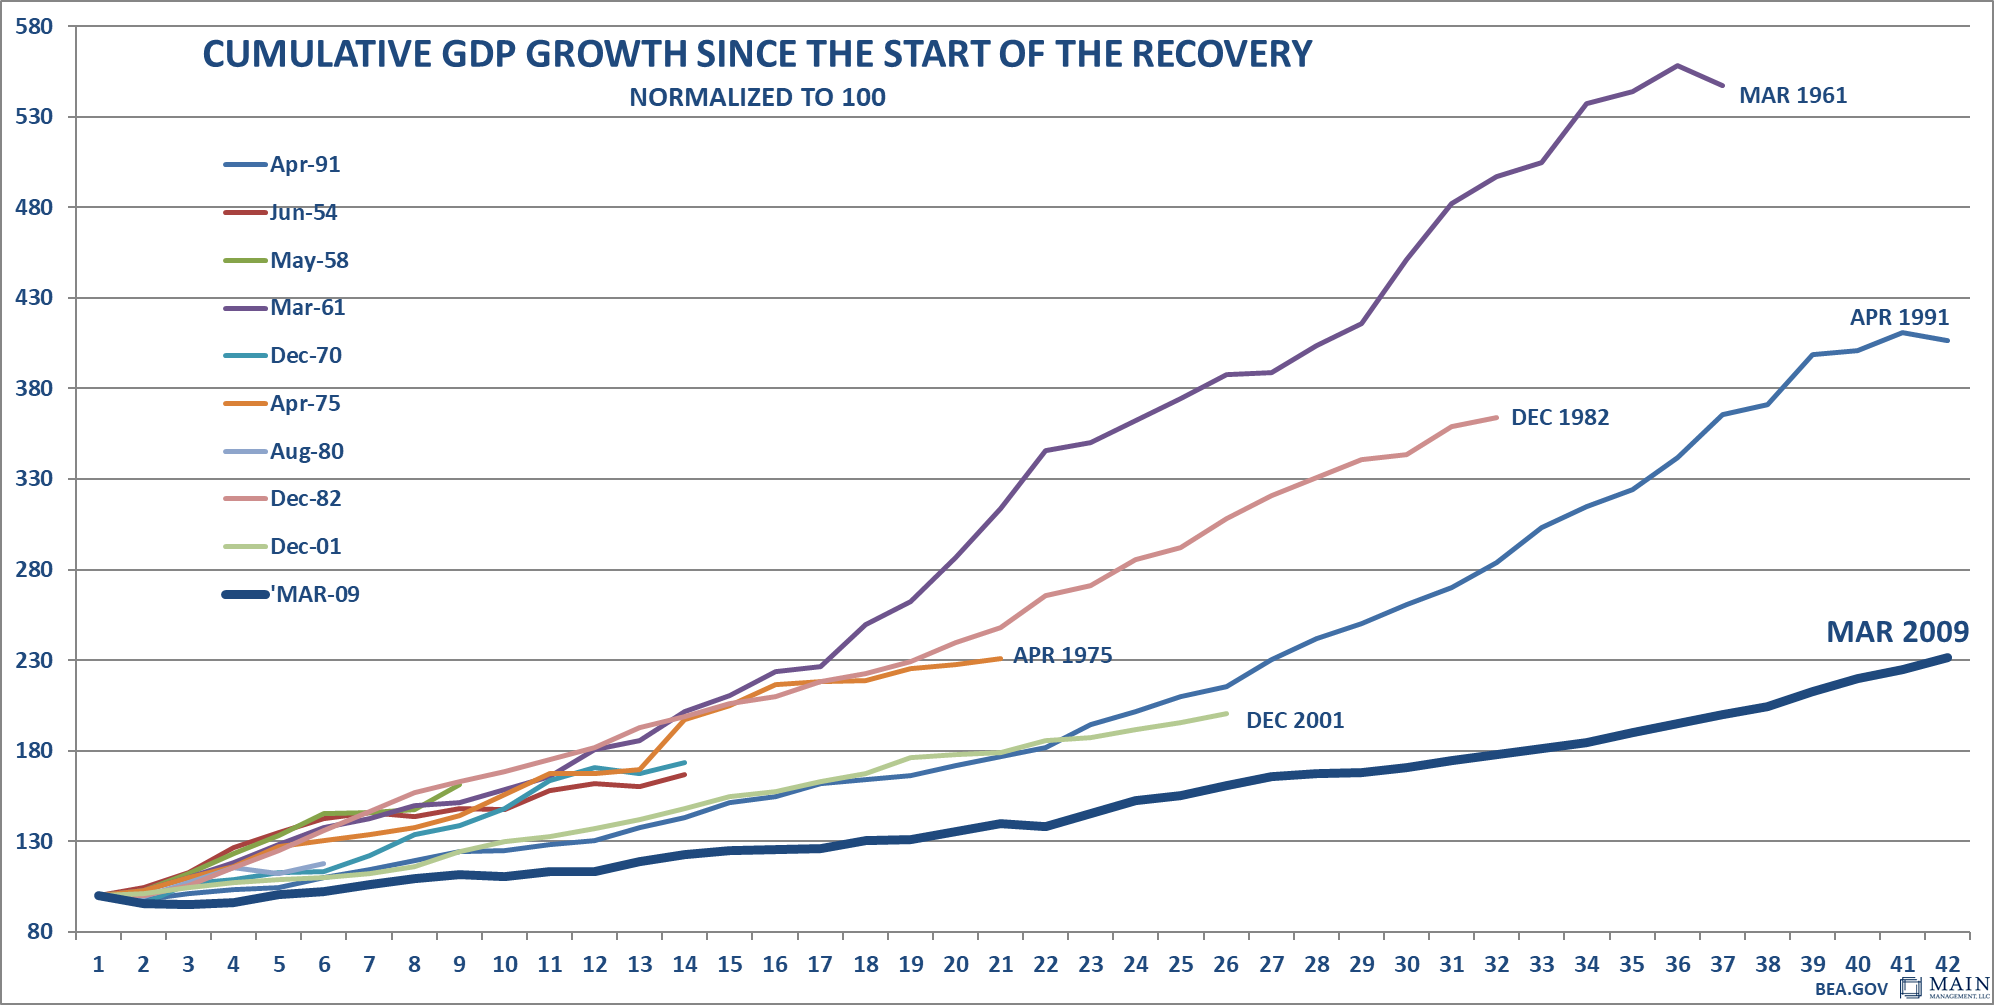 Cumulative GDP Growth Since Start of Recovery